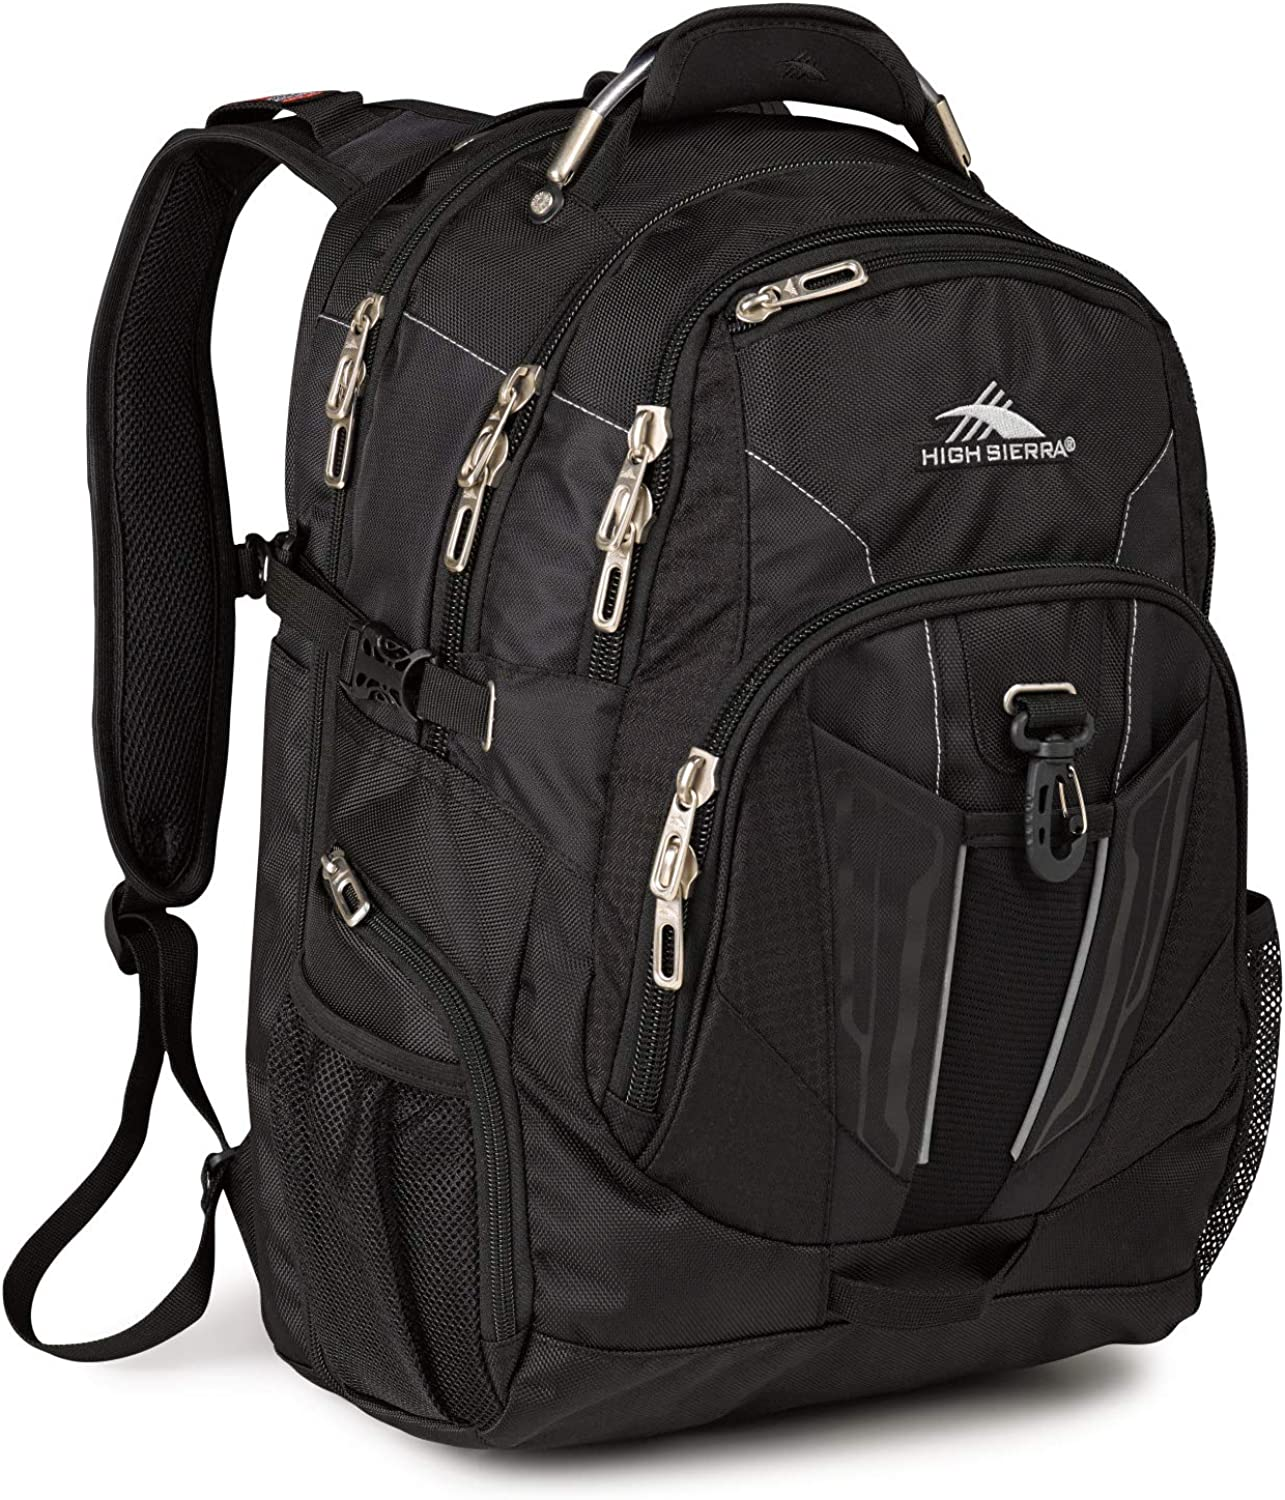 High Sierra Xbt-TSA Laptop Backpack